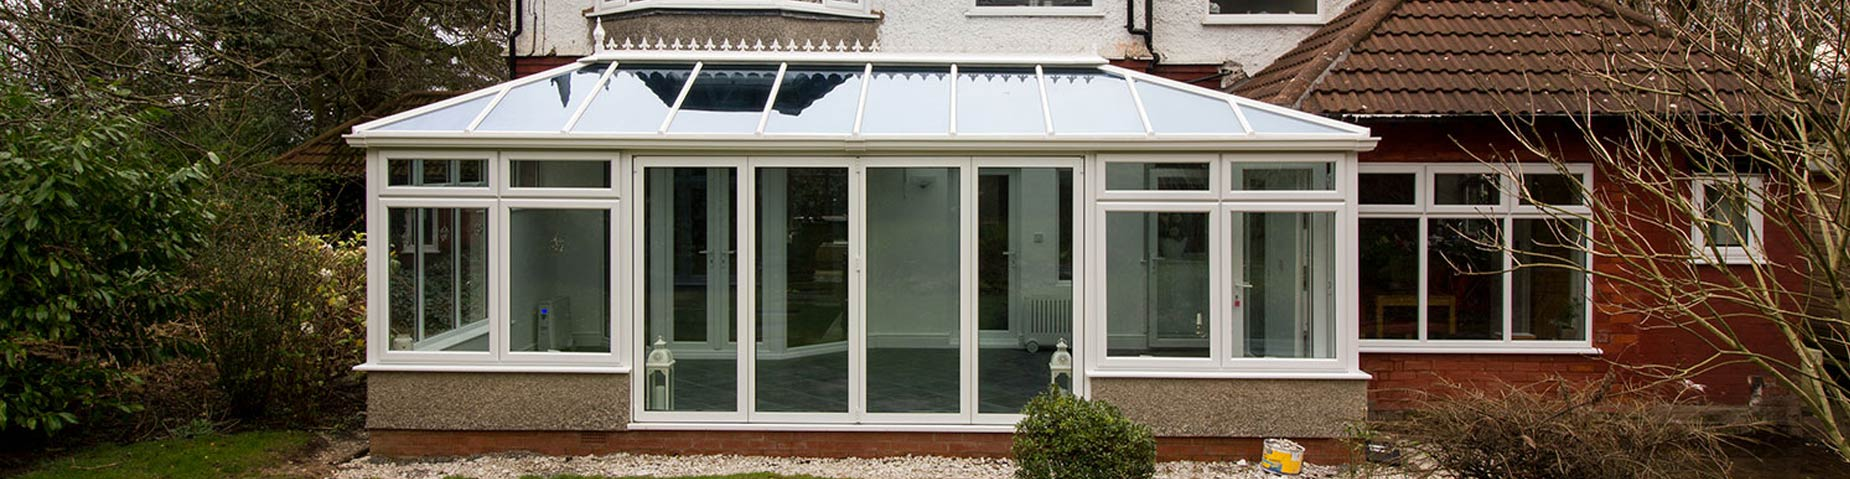 Conservatory installed featuring Celcius One glass.